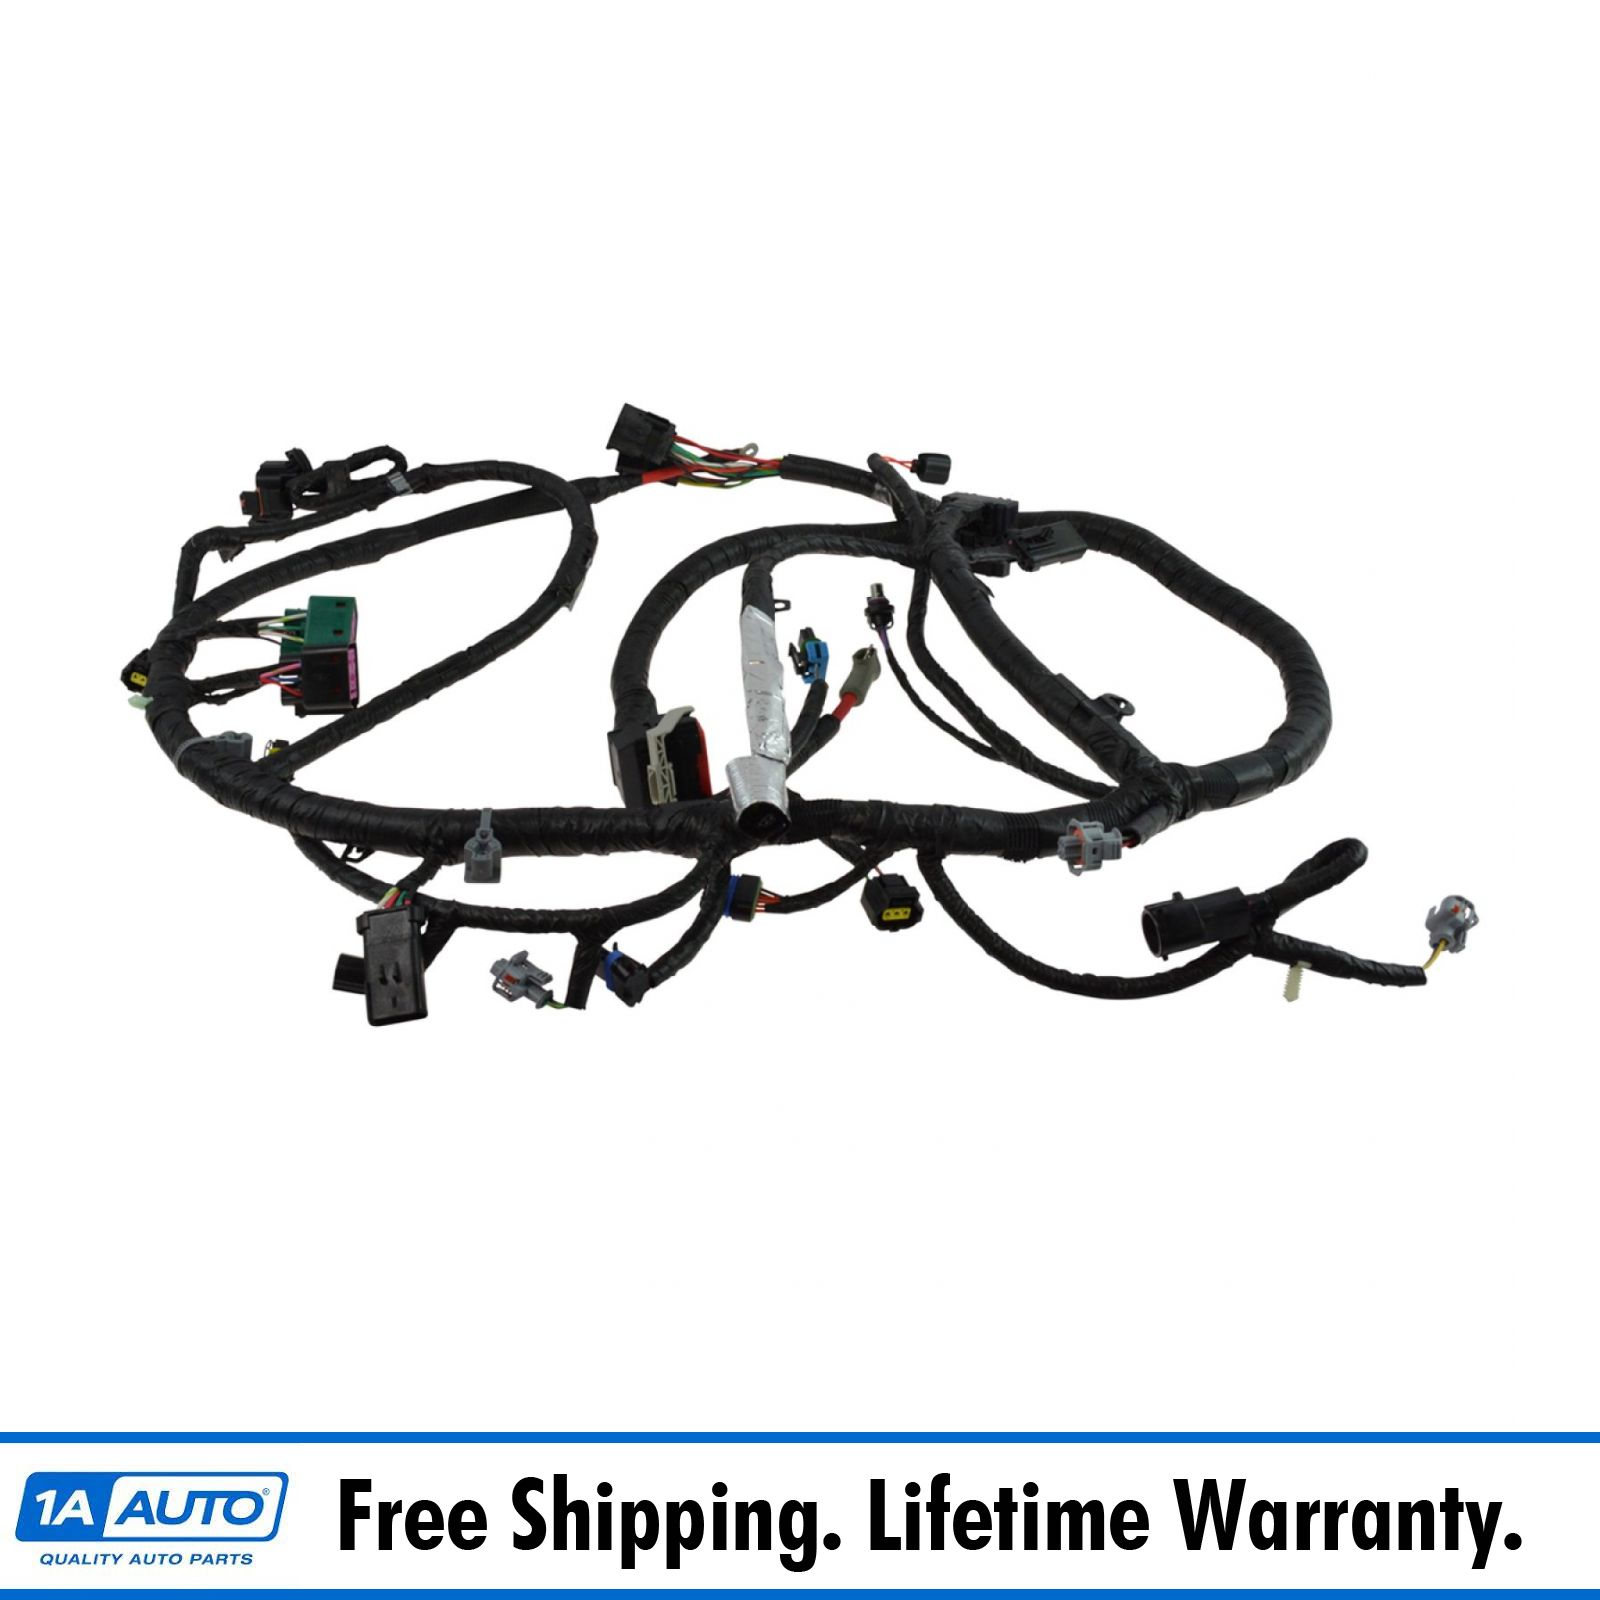 hight resolution of oem diesel engine wiring harness for 04 ford f250 f350 f450 04 05 excursion 6 0l